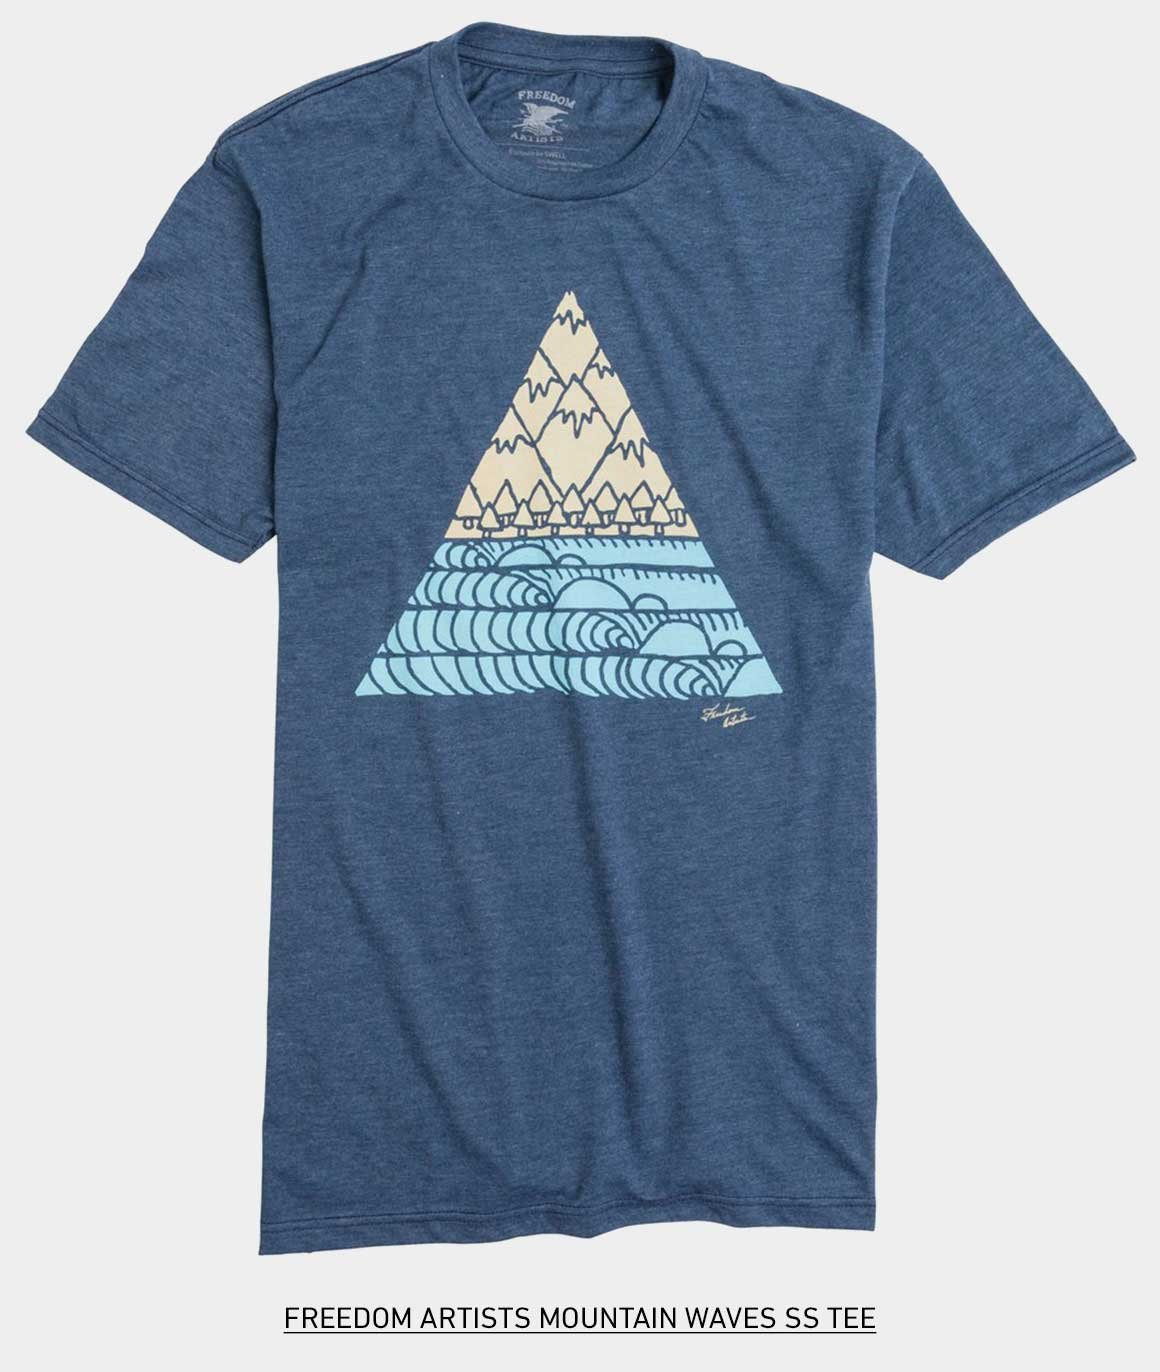 FREEDOM ARTISTS MOUNTAIN WAVES SS TEE